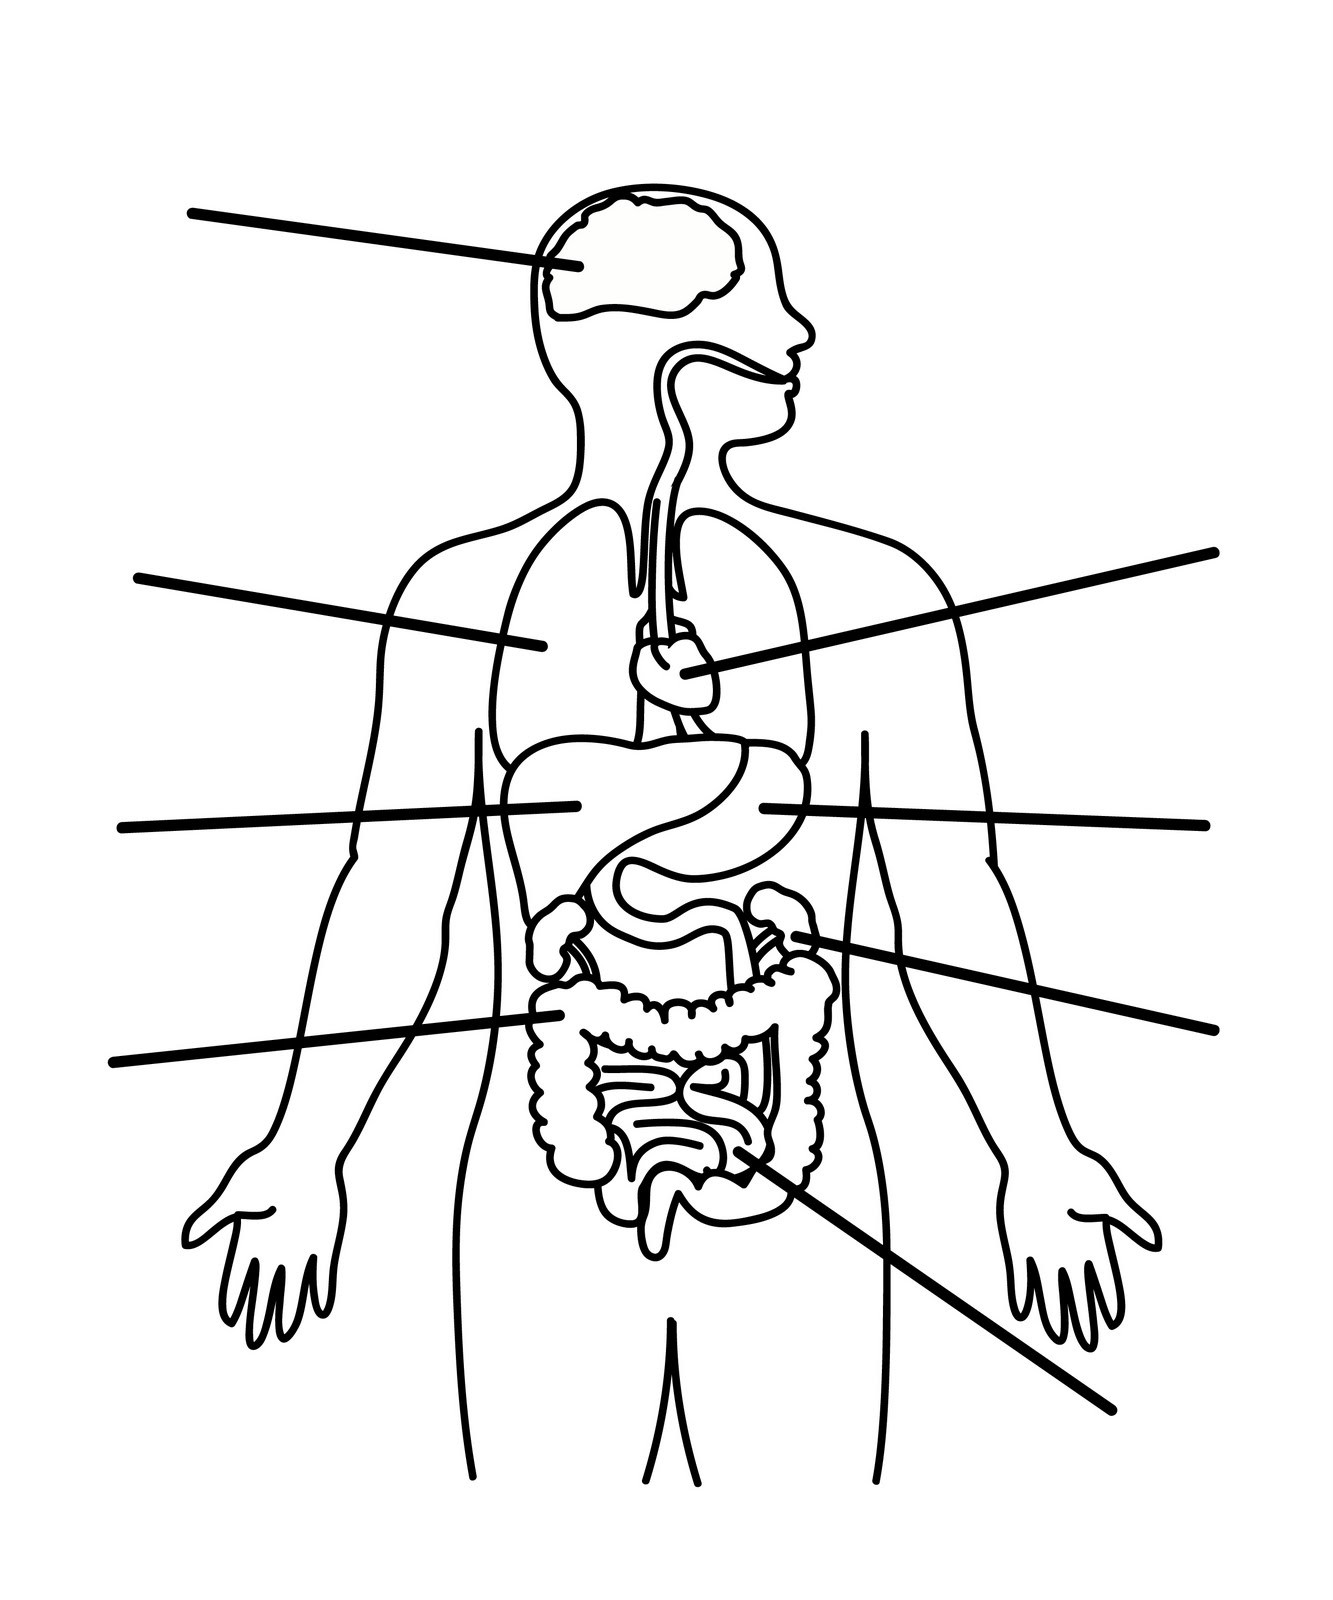 1333x1600 Human Body Parts Outline Drawing Elegant Free Coloring Pages